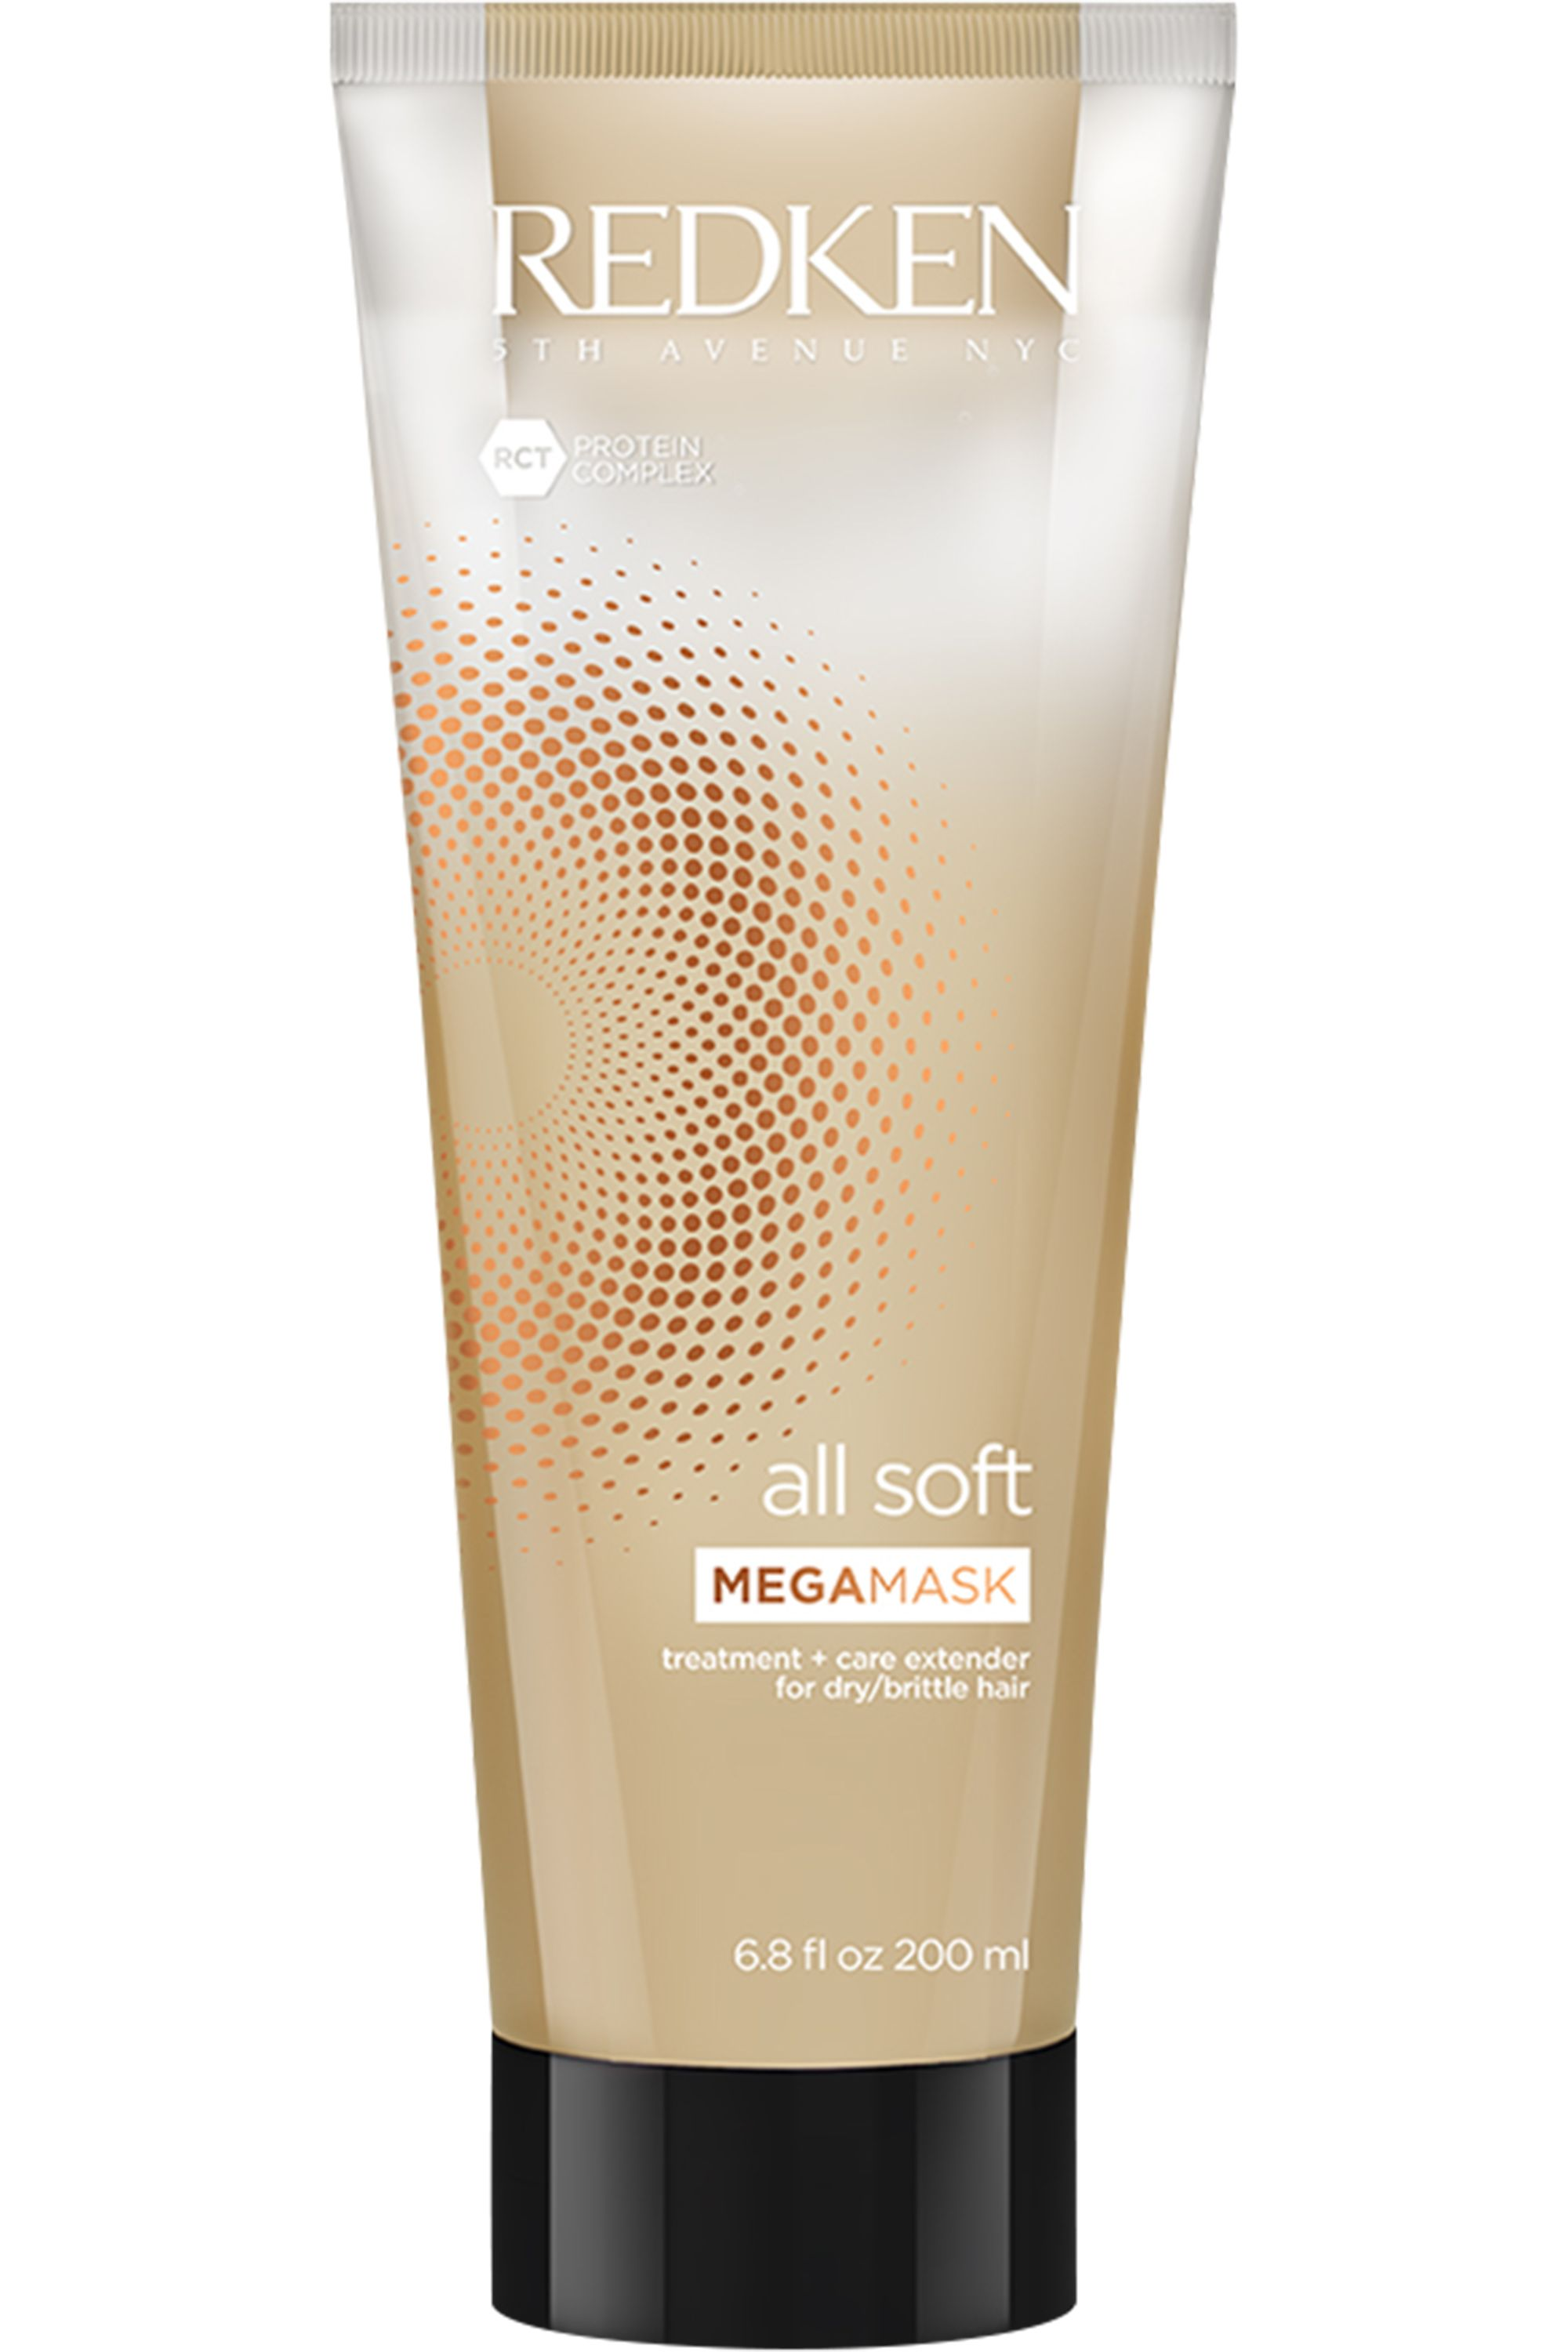 Blissim : Redken - Masque All Soft Megamask - Masque All Soft Megamask